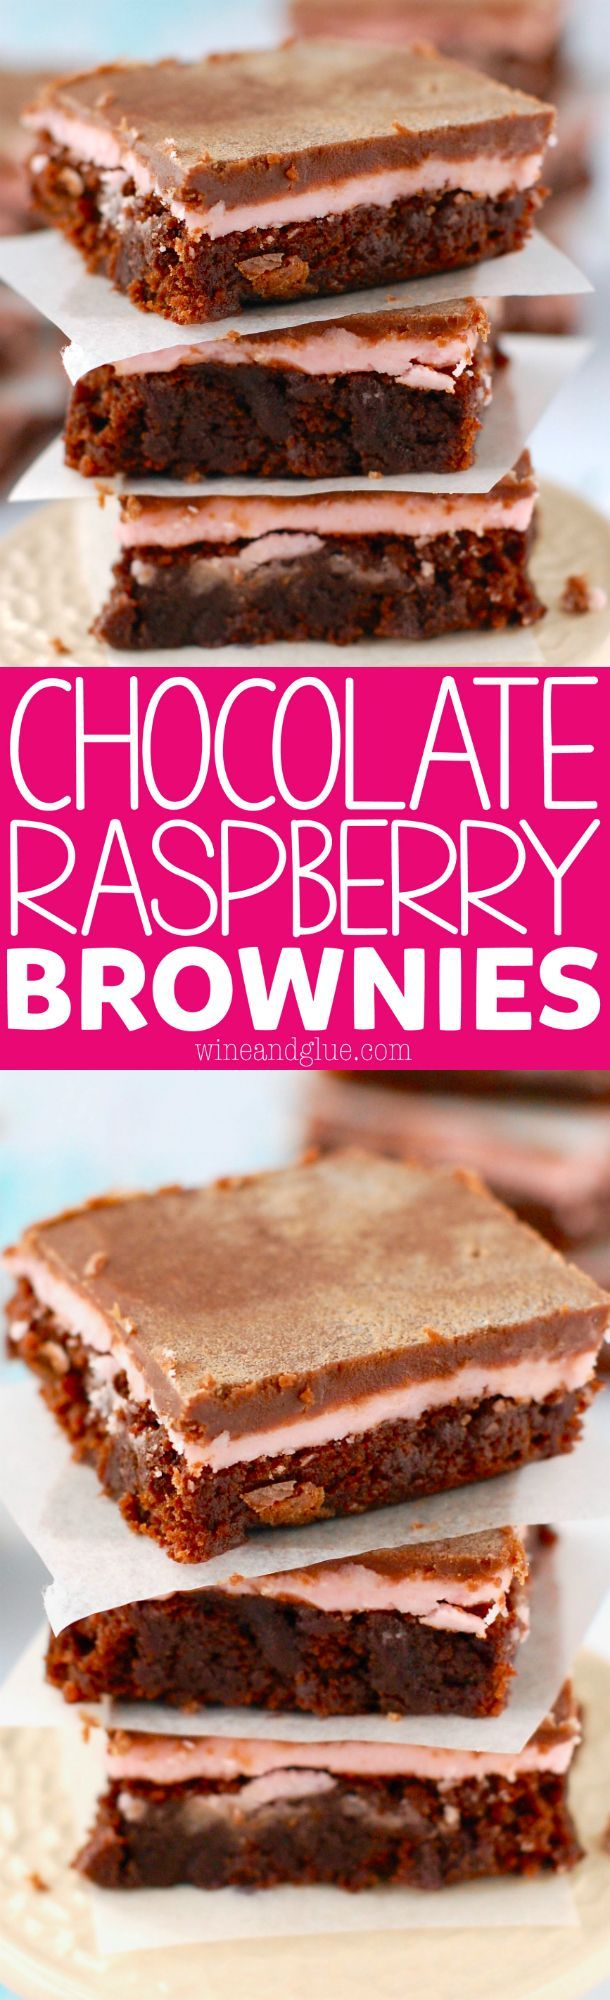 These Chocolate Raspberry Brownies are deliciously easy and such a perfect flavor combo!